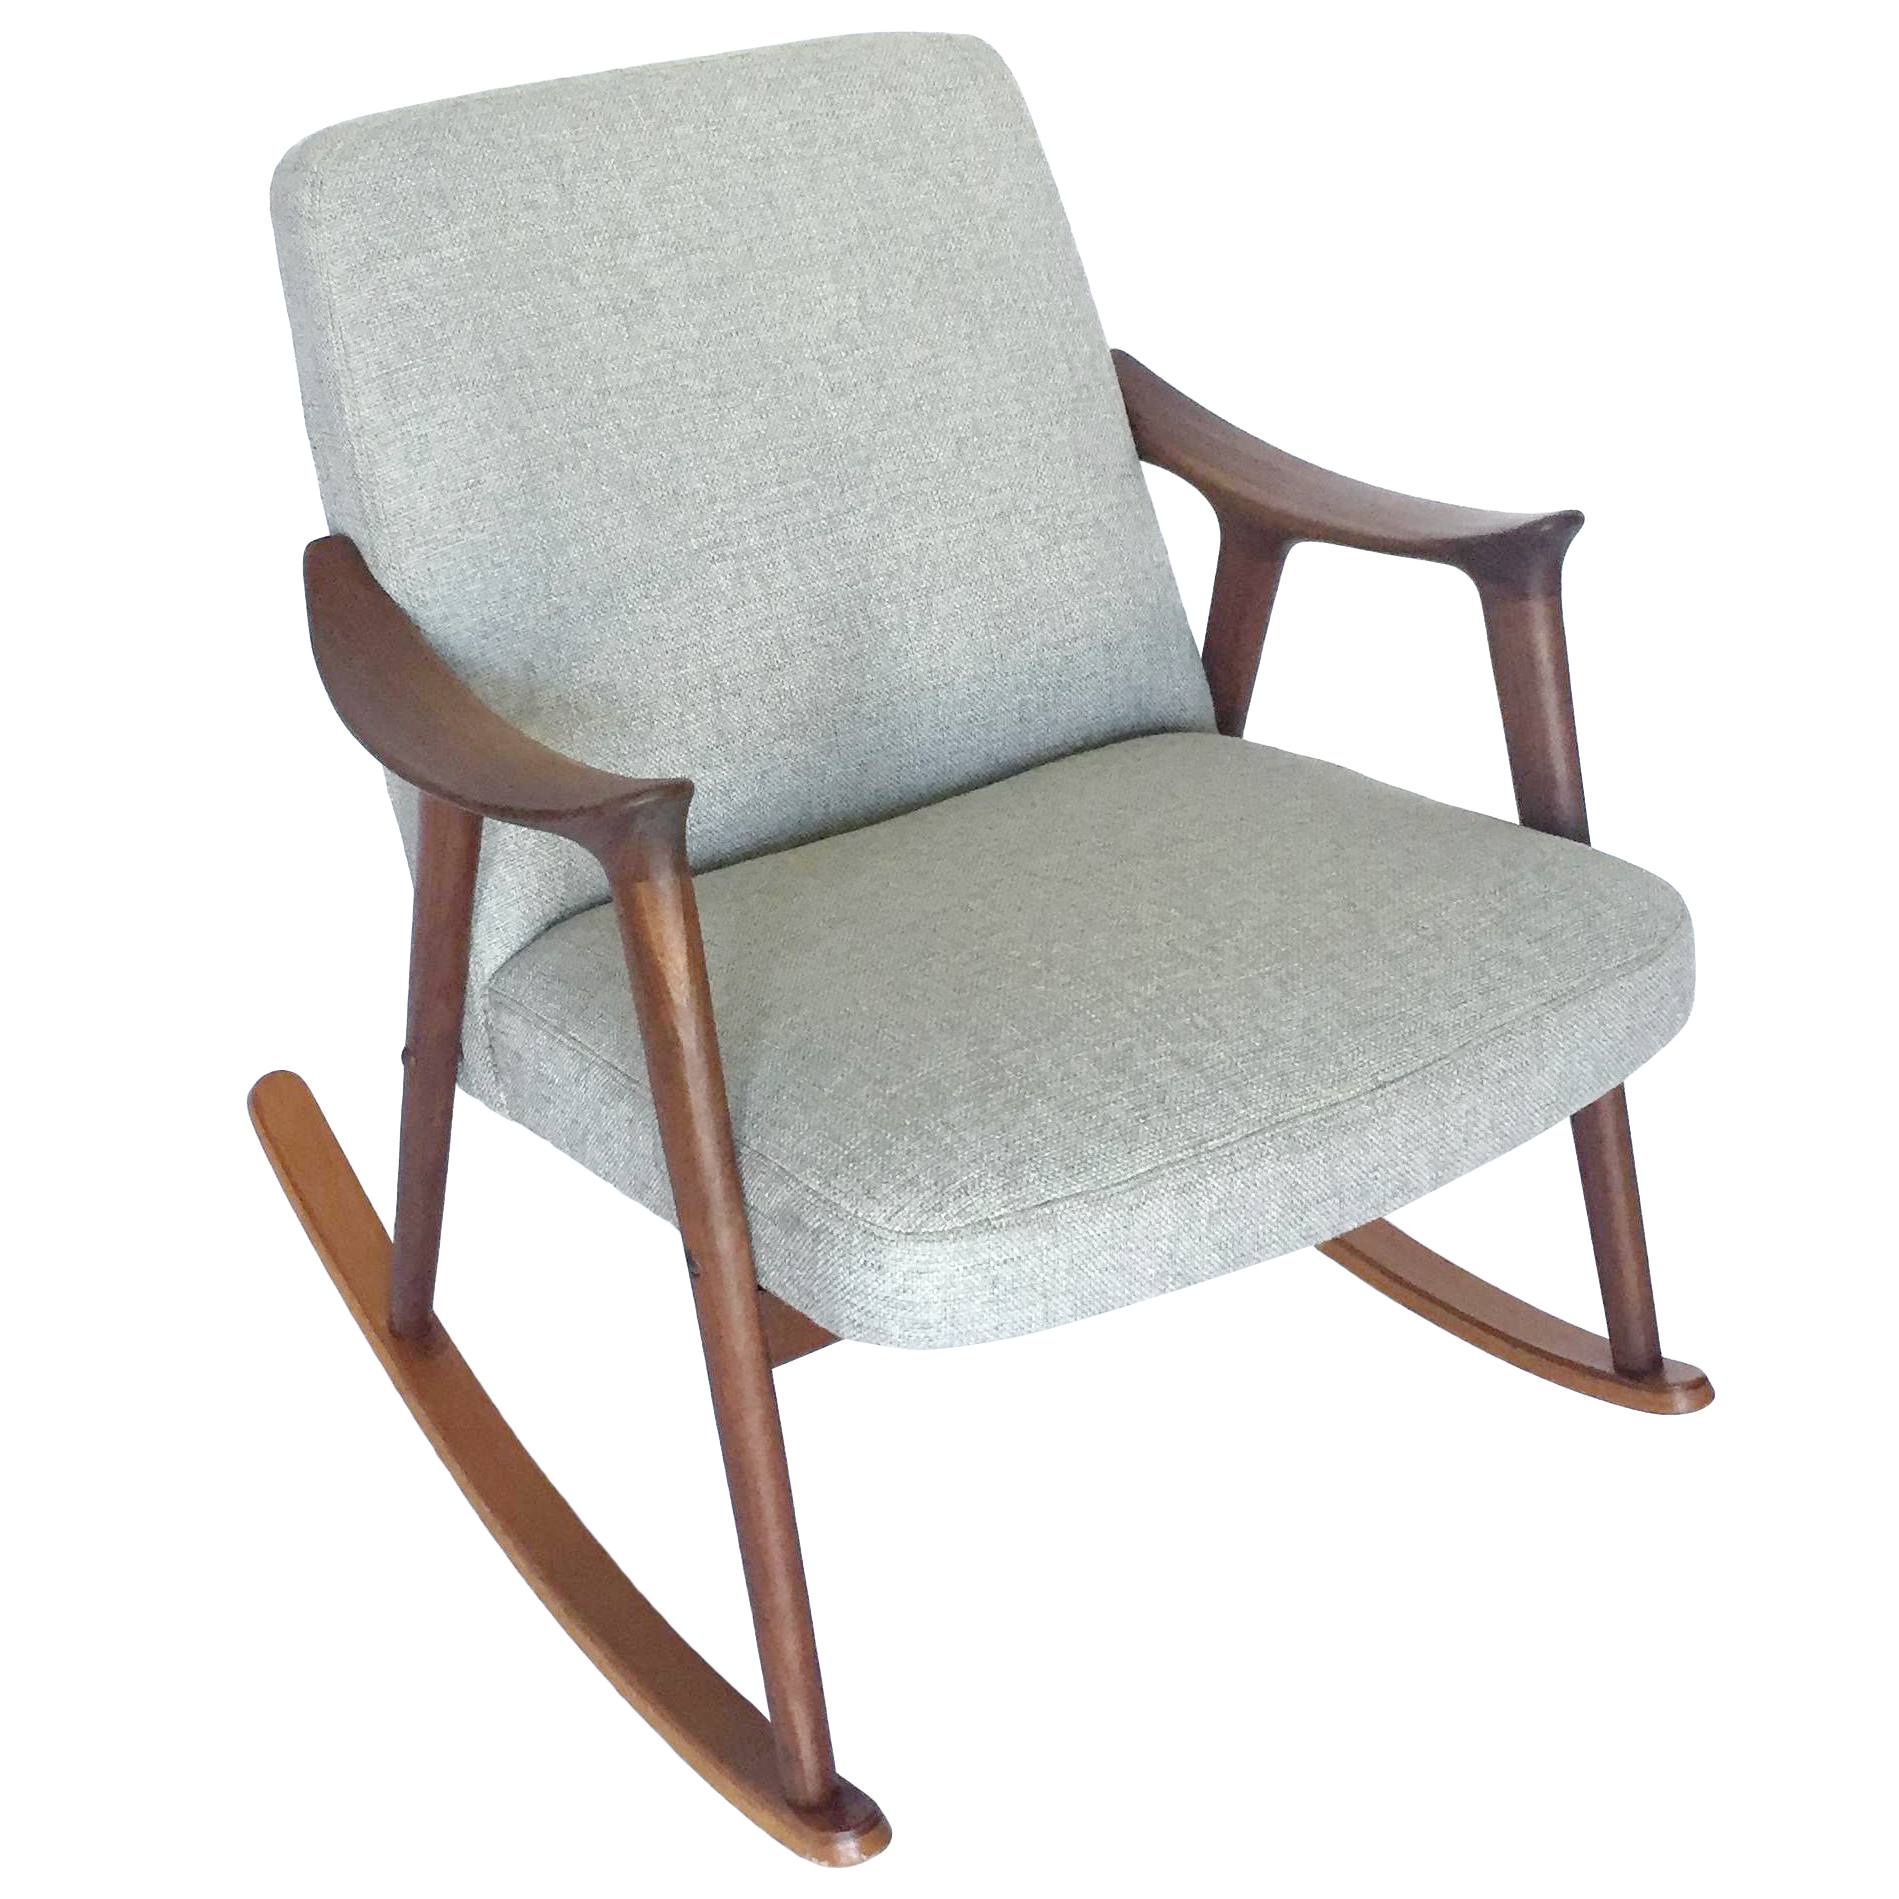 Perfect Norwegian Mid Century Rocking Chair